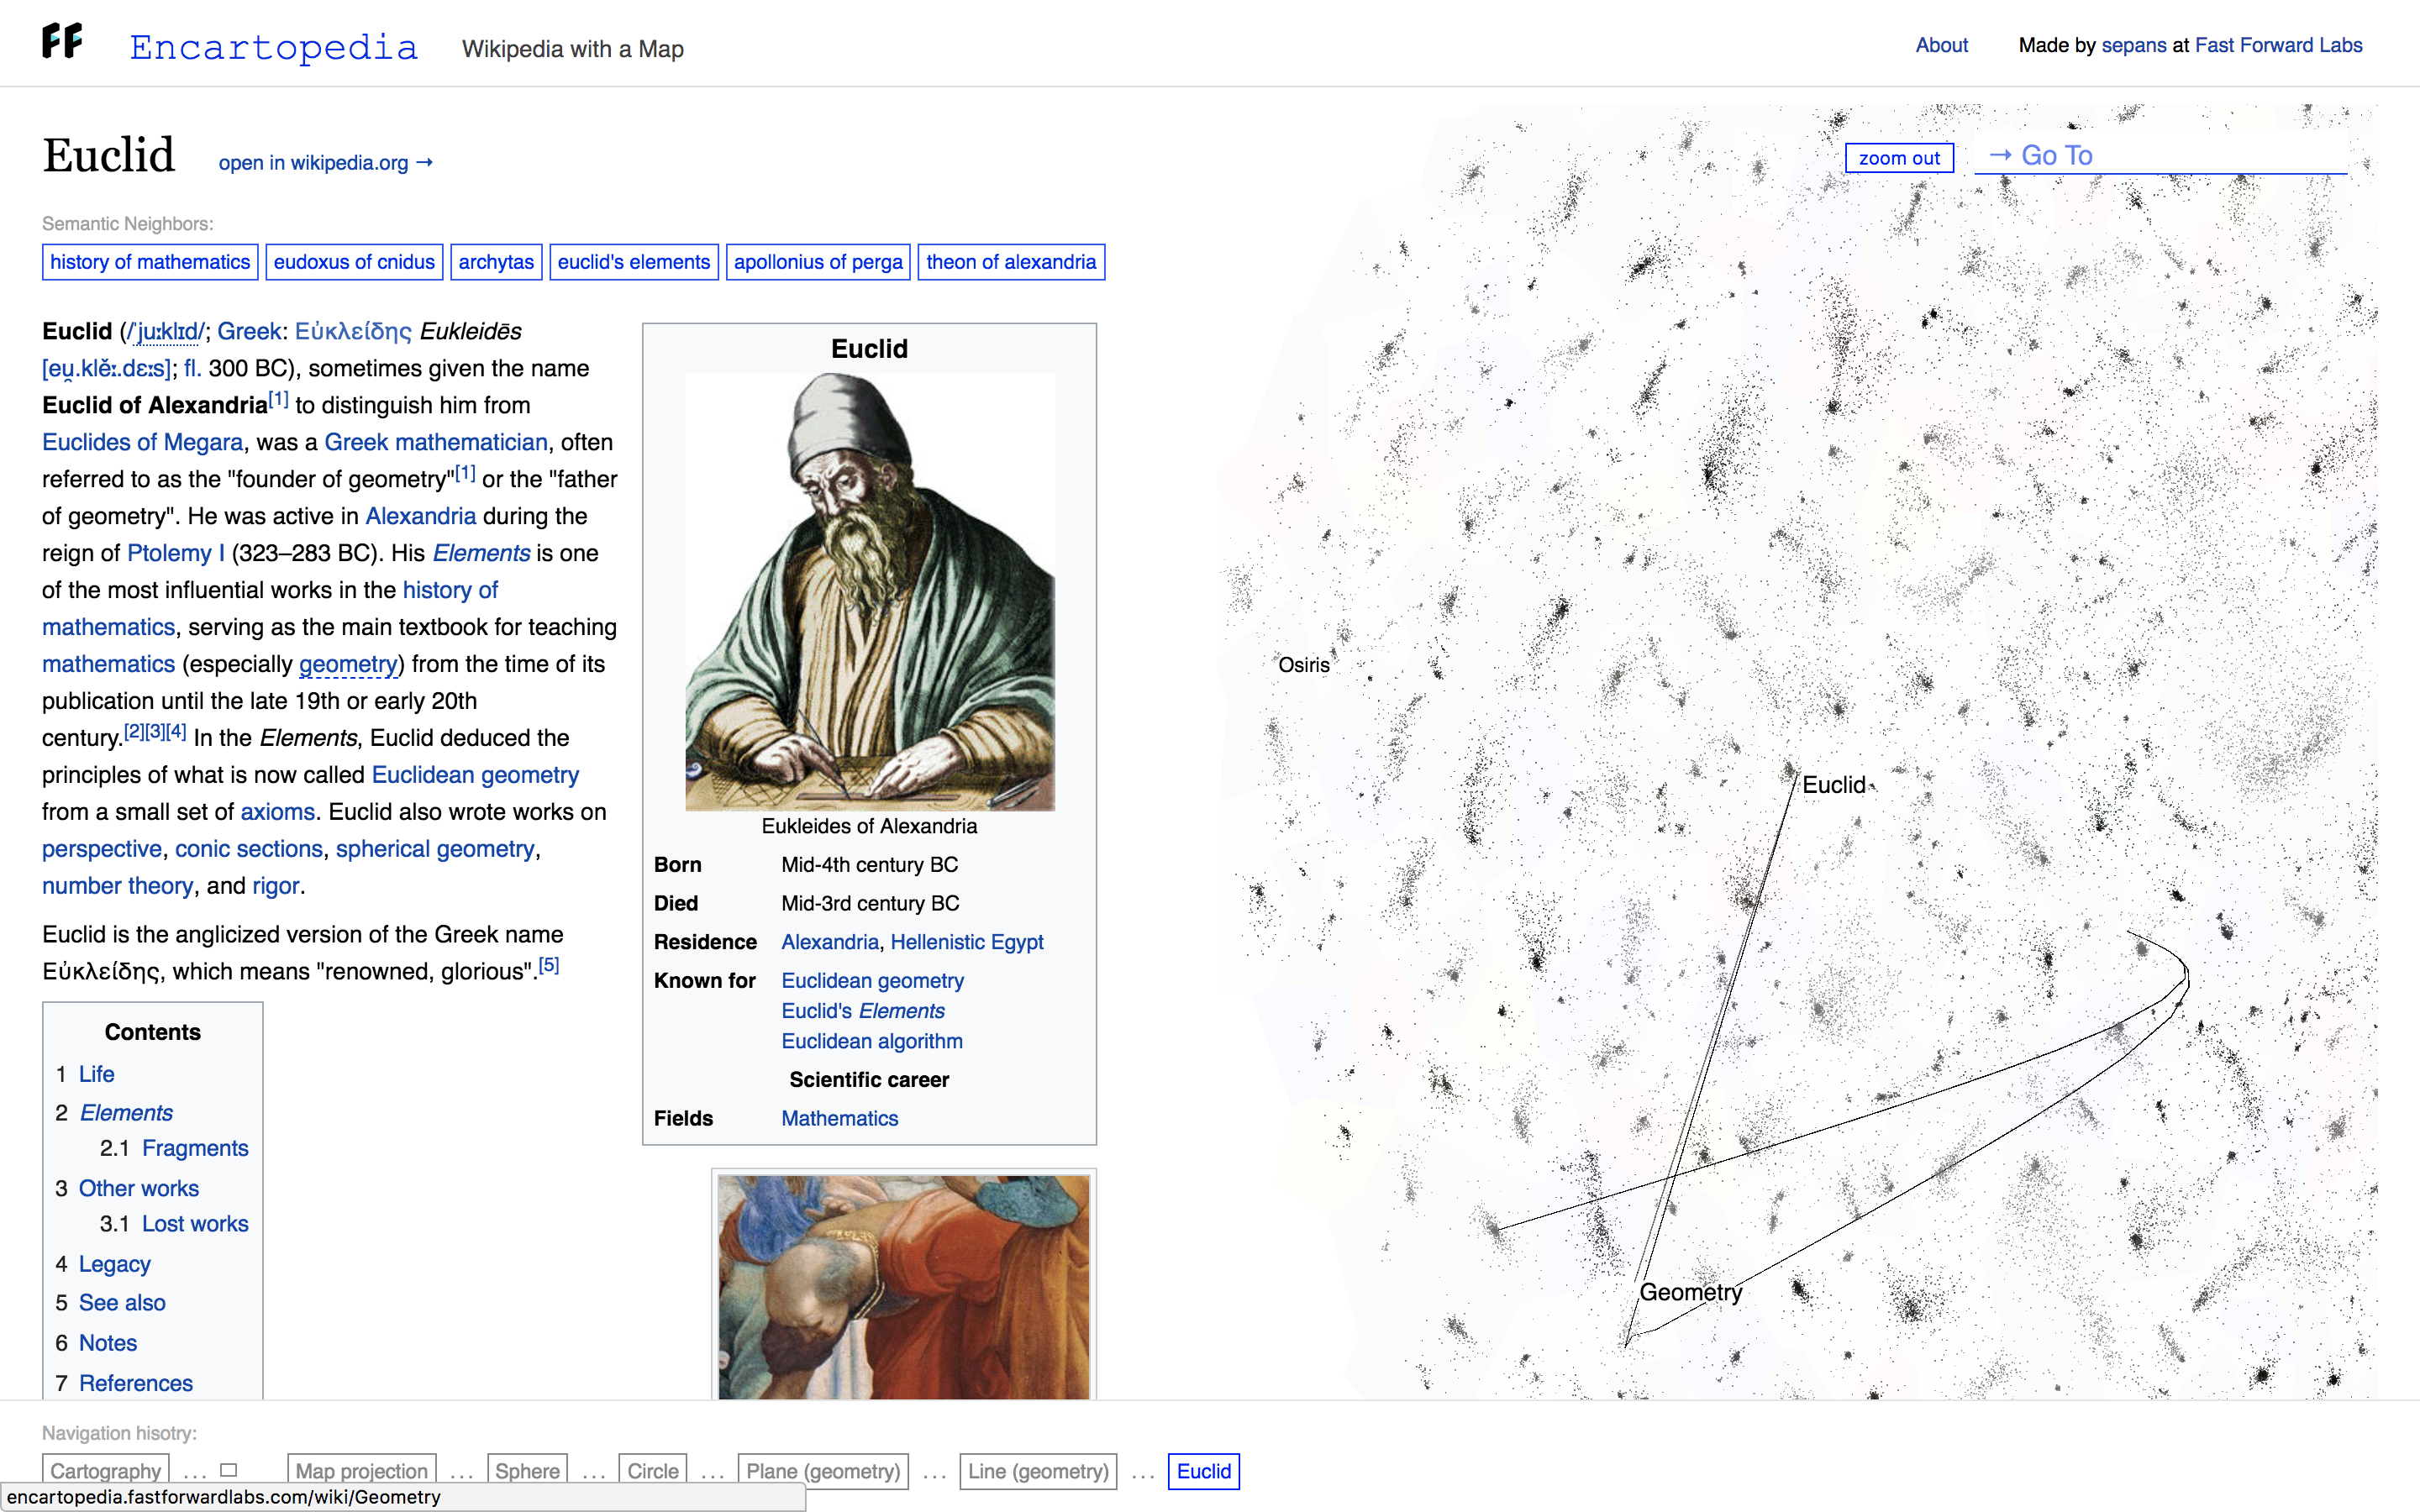 A screenshot of Encartopedia. On the left is the Wikipedia article on Euclid. On the right is a visualization of the articles on Wikipedia and a line showing the user's journey through other articles to get to the Euclid article.